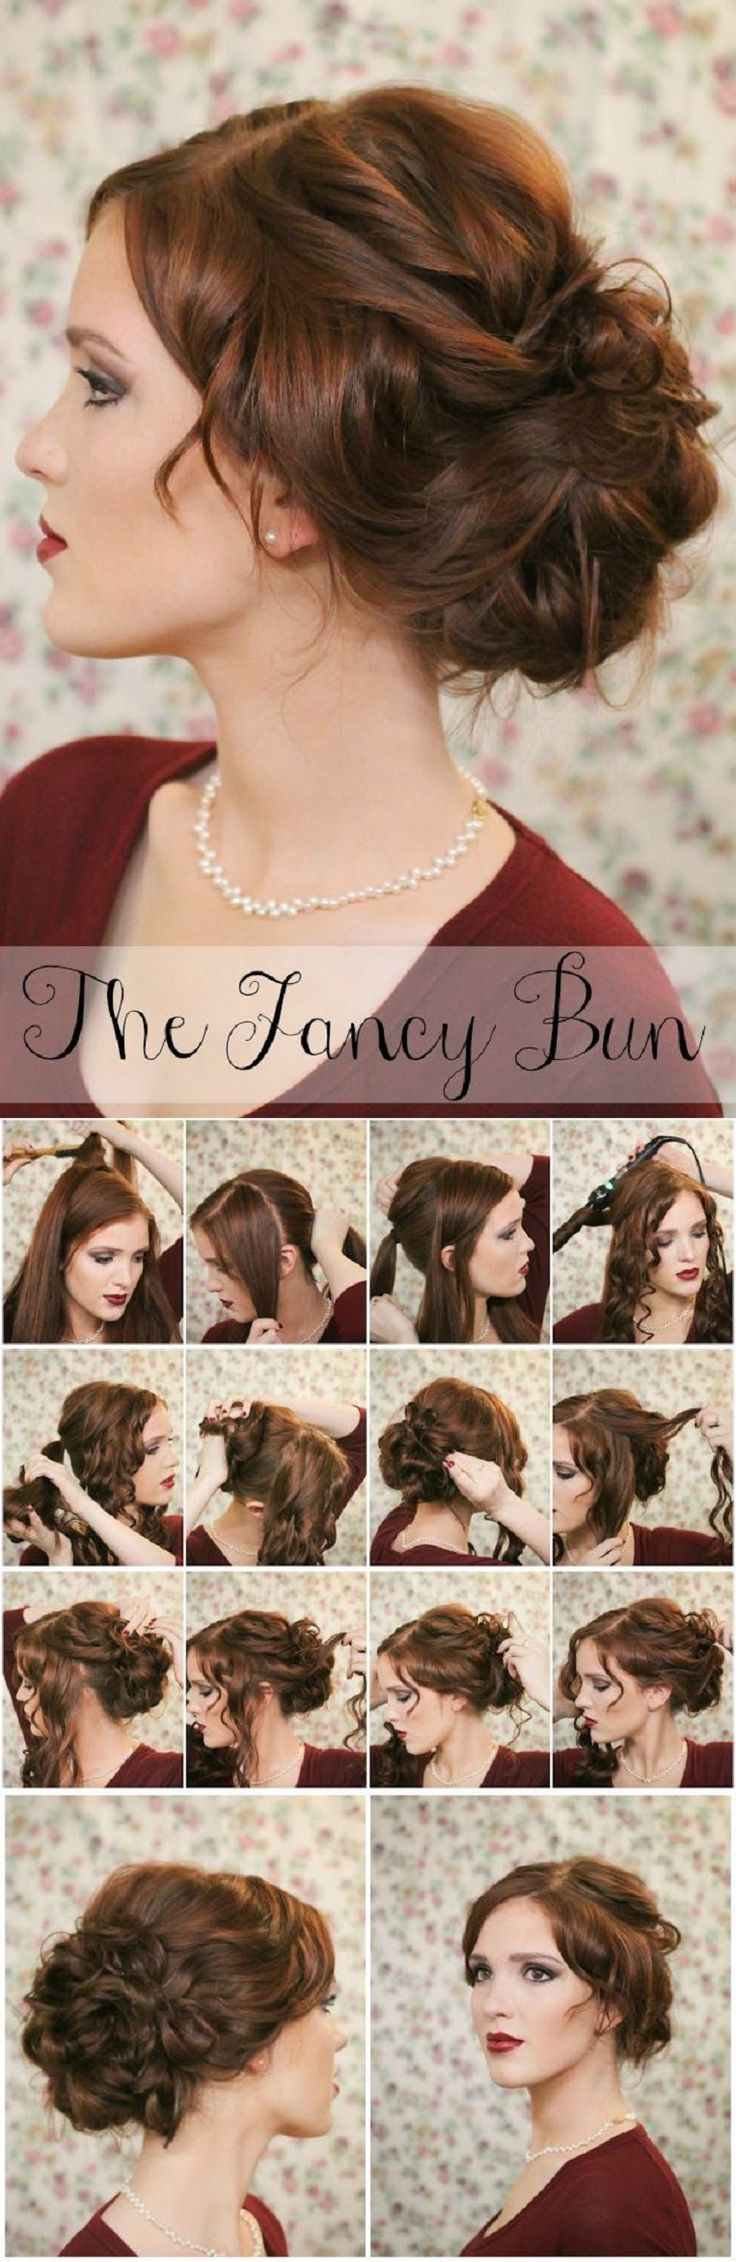 Super Easy Knotted Bun Updo - 12 Vintage-Inspired DIY Hairstyle Tutorials   GleamItUp